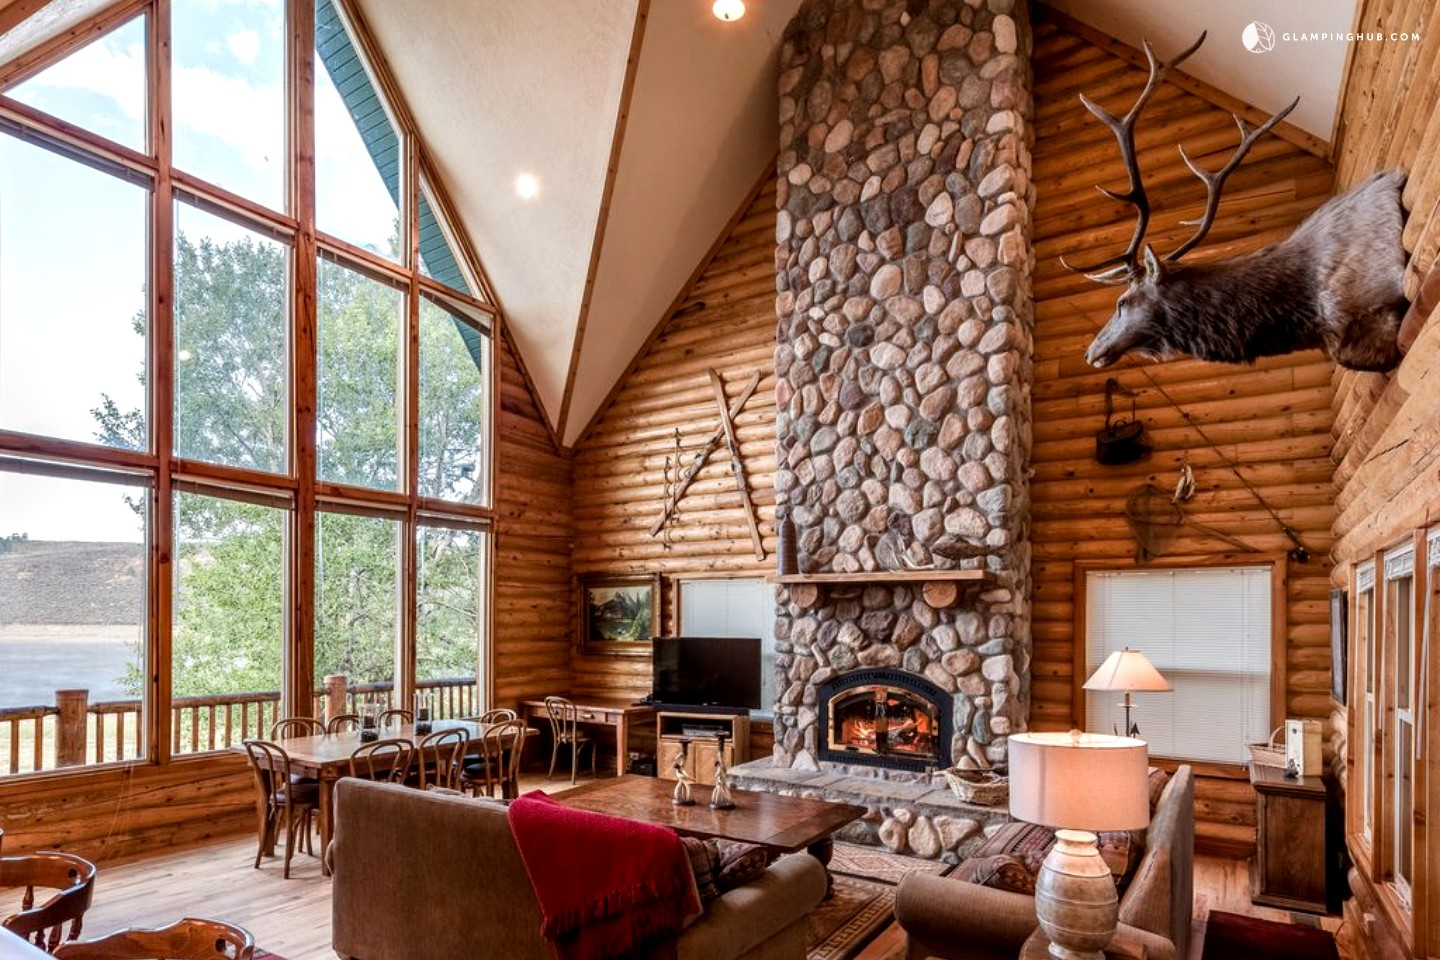 cabins rentals cabin utah home mountain colorado view luxury house estates destinations rental sundance exotic telluride in condos vacation villas